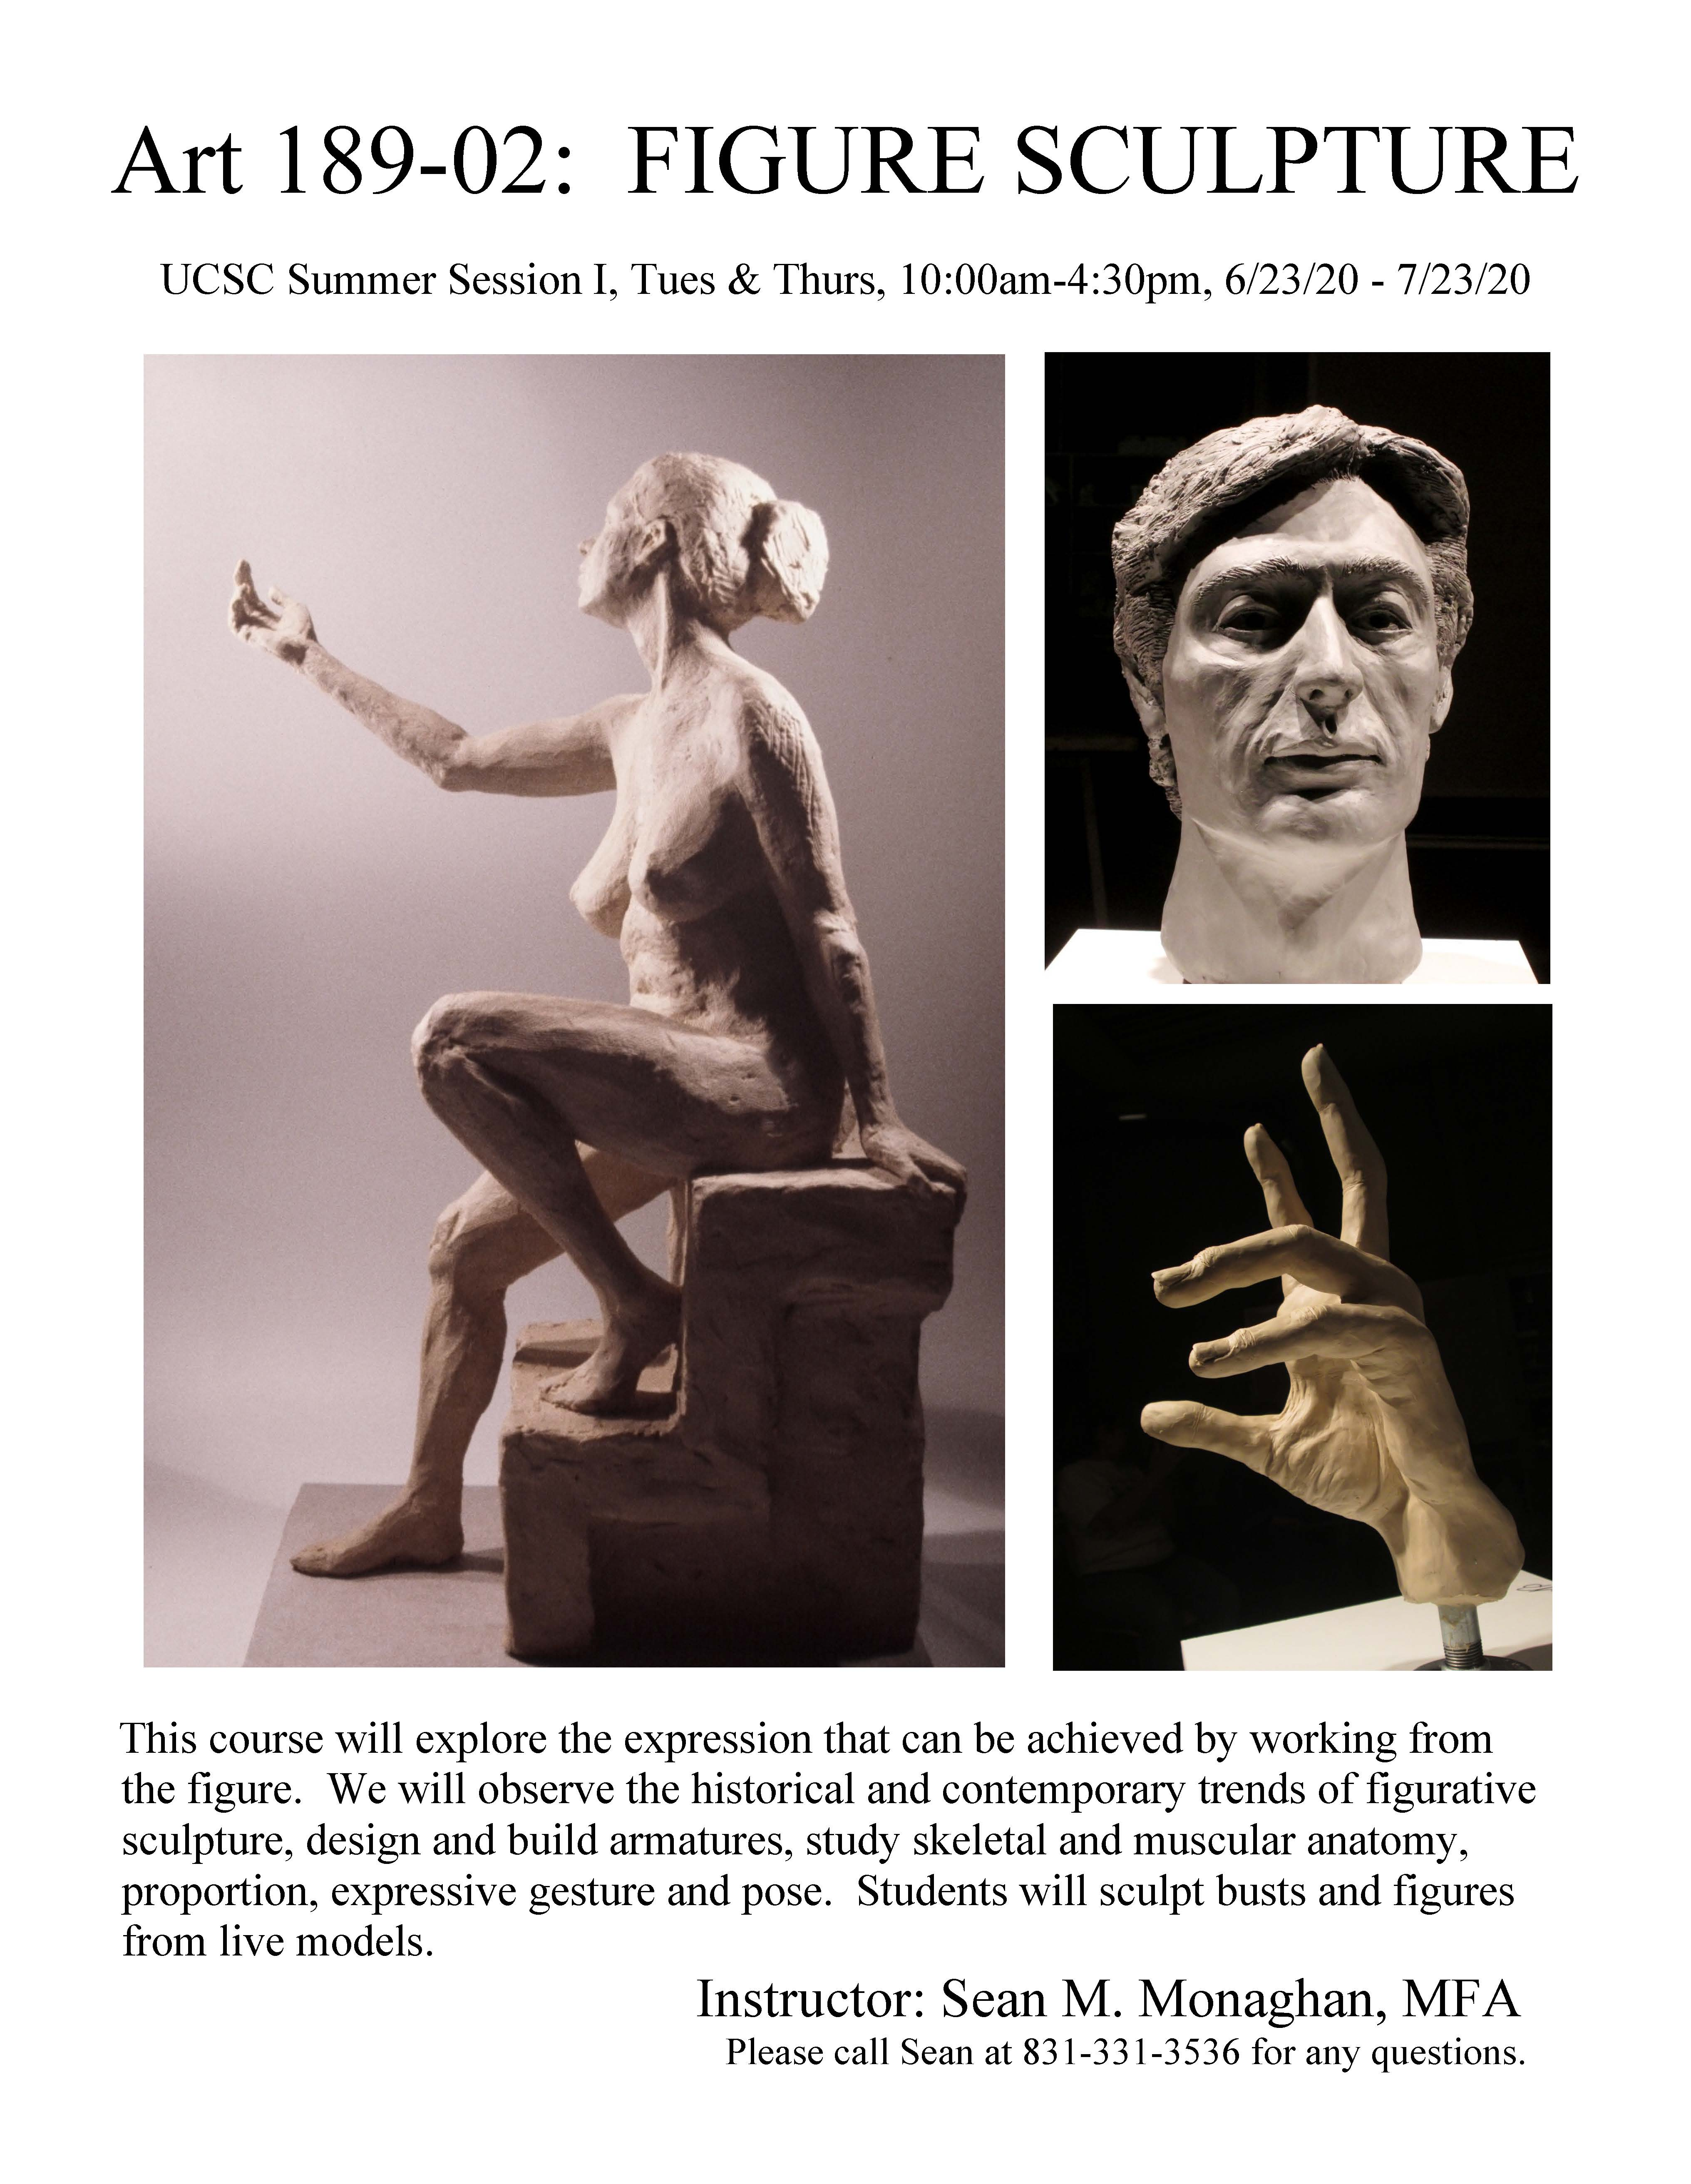 Art 189-02 Figure Sculpture